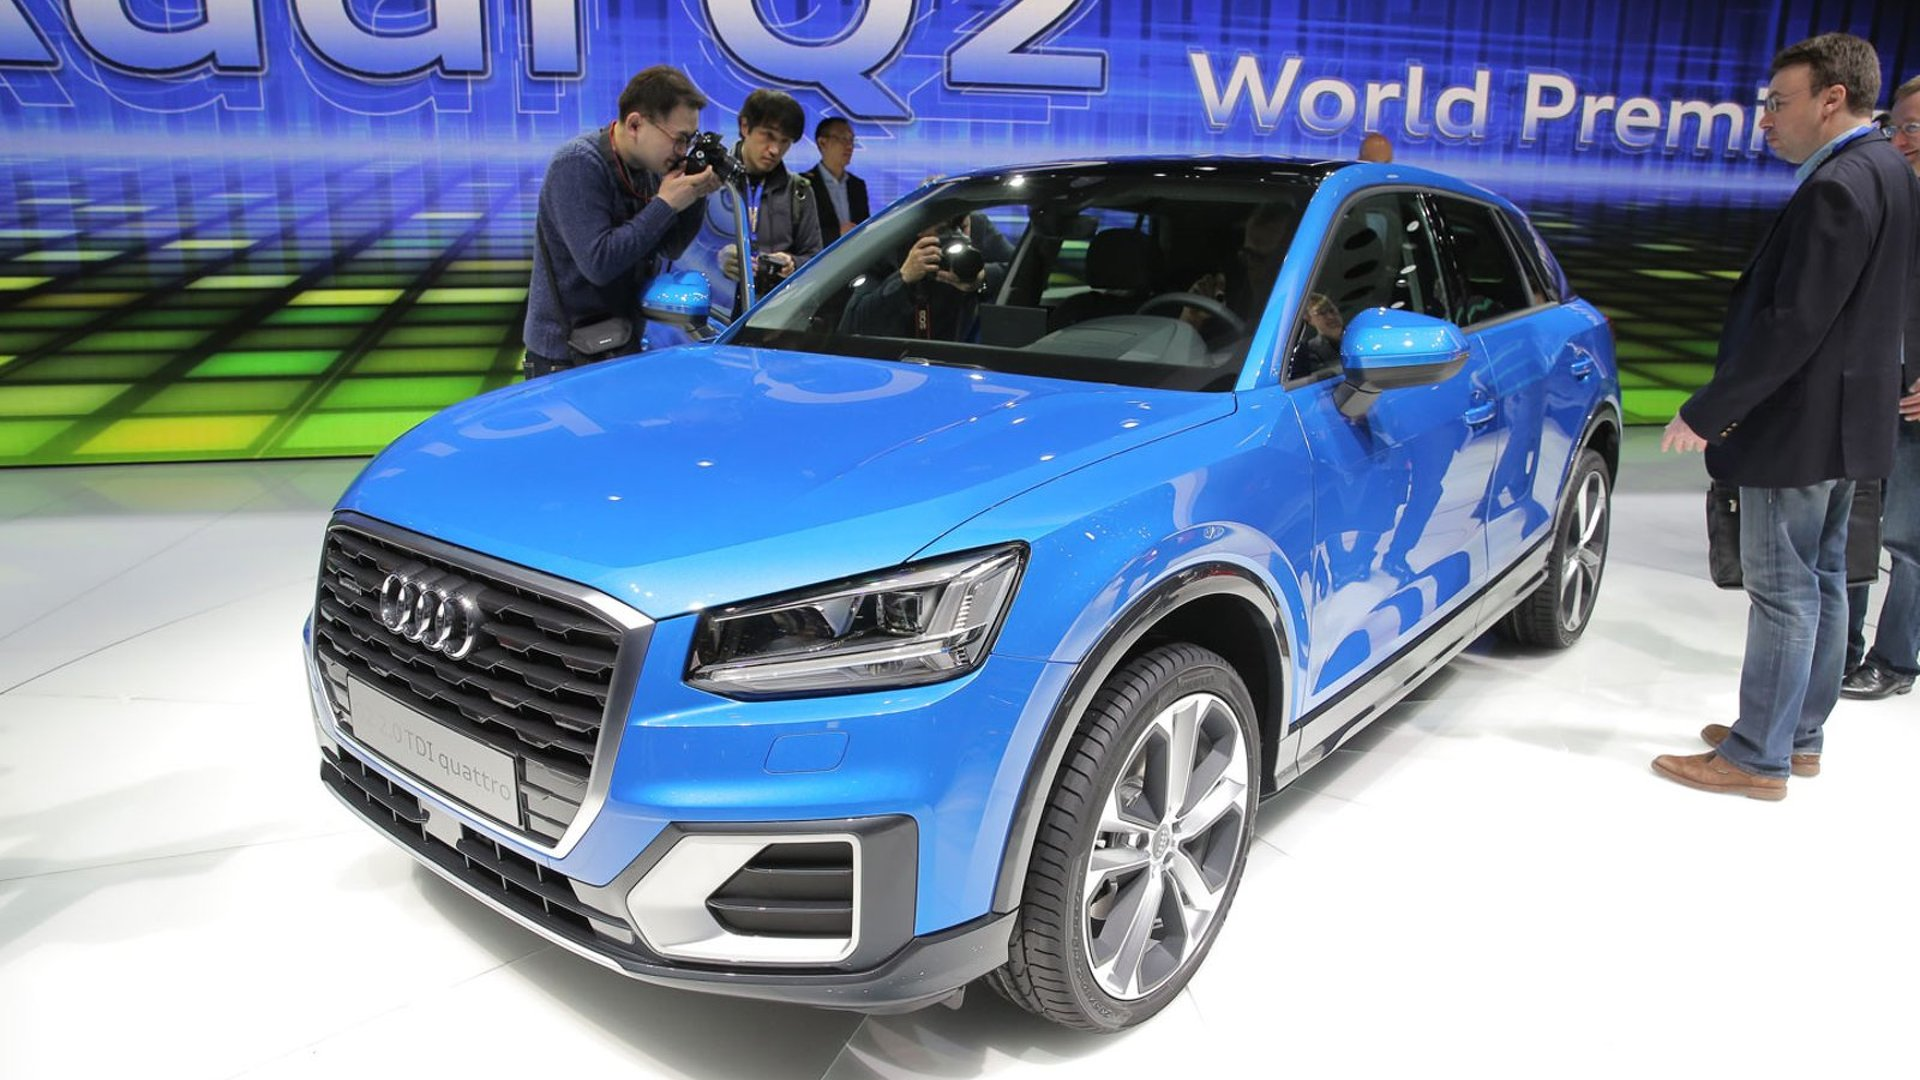 Audi Q2 baby crossover goes official, finally (128 pics)